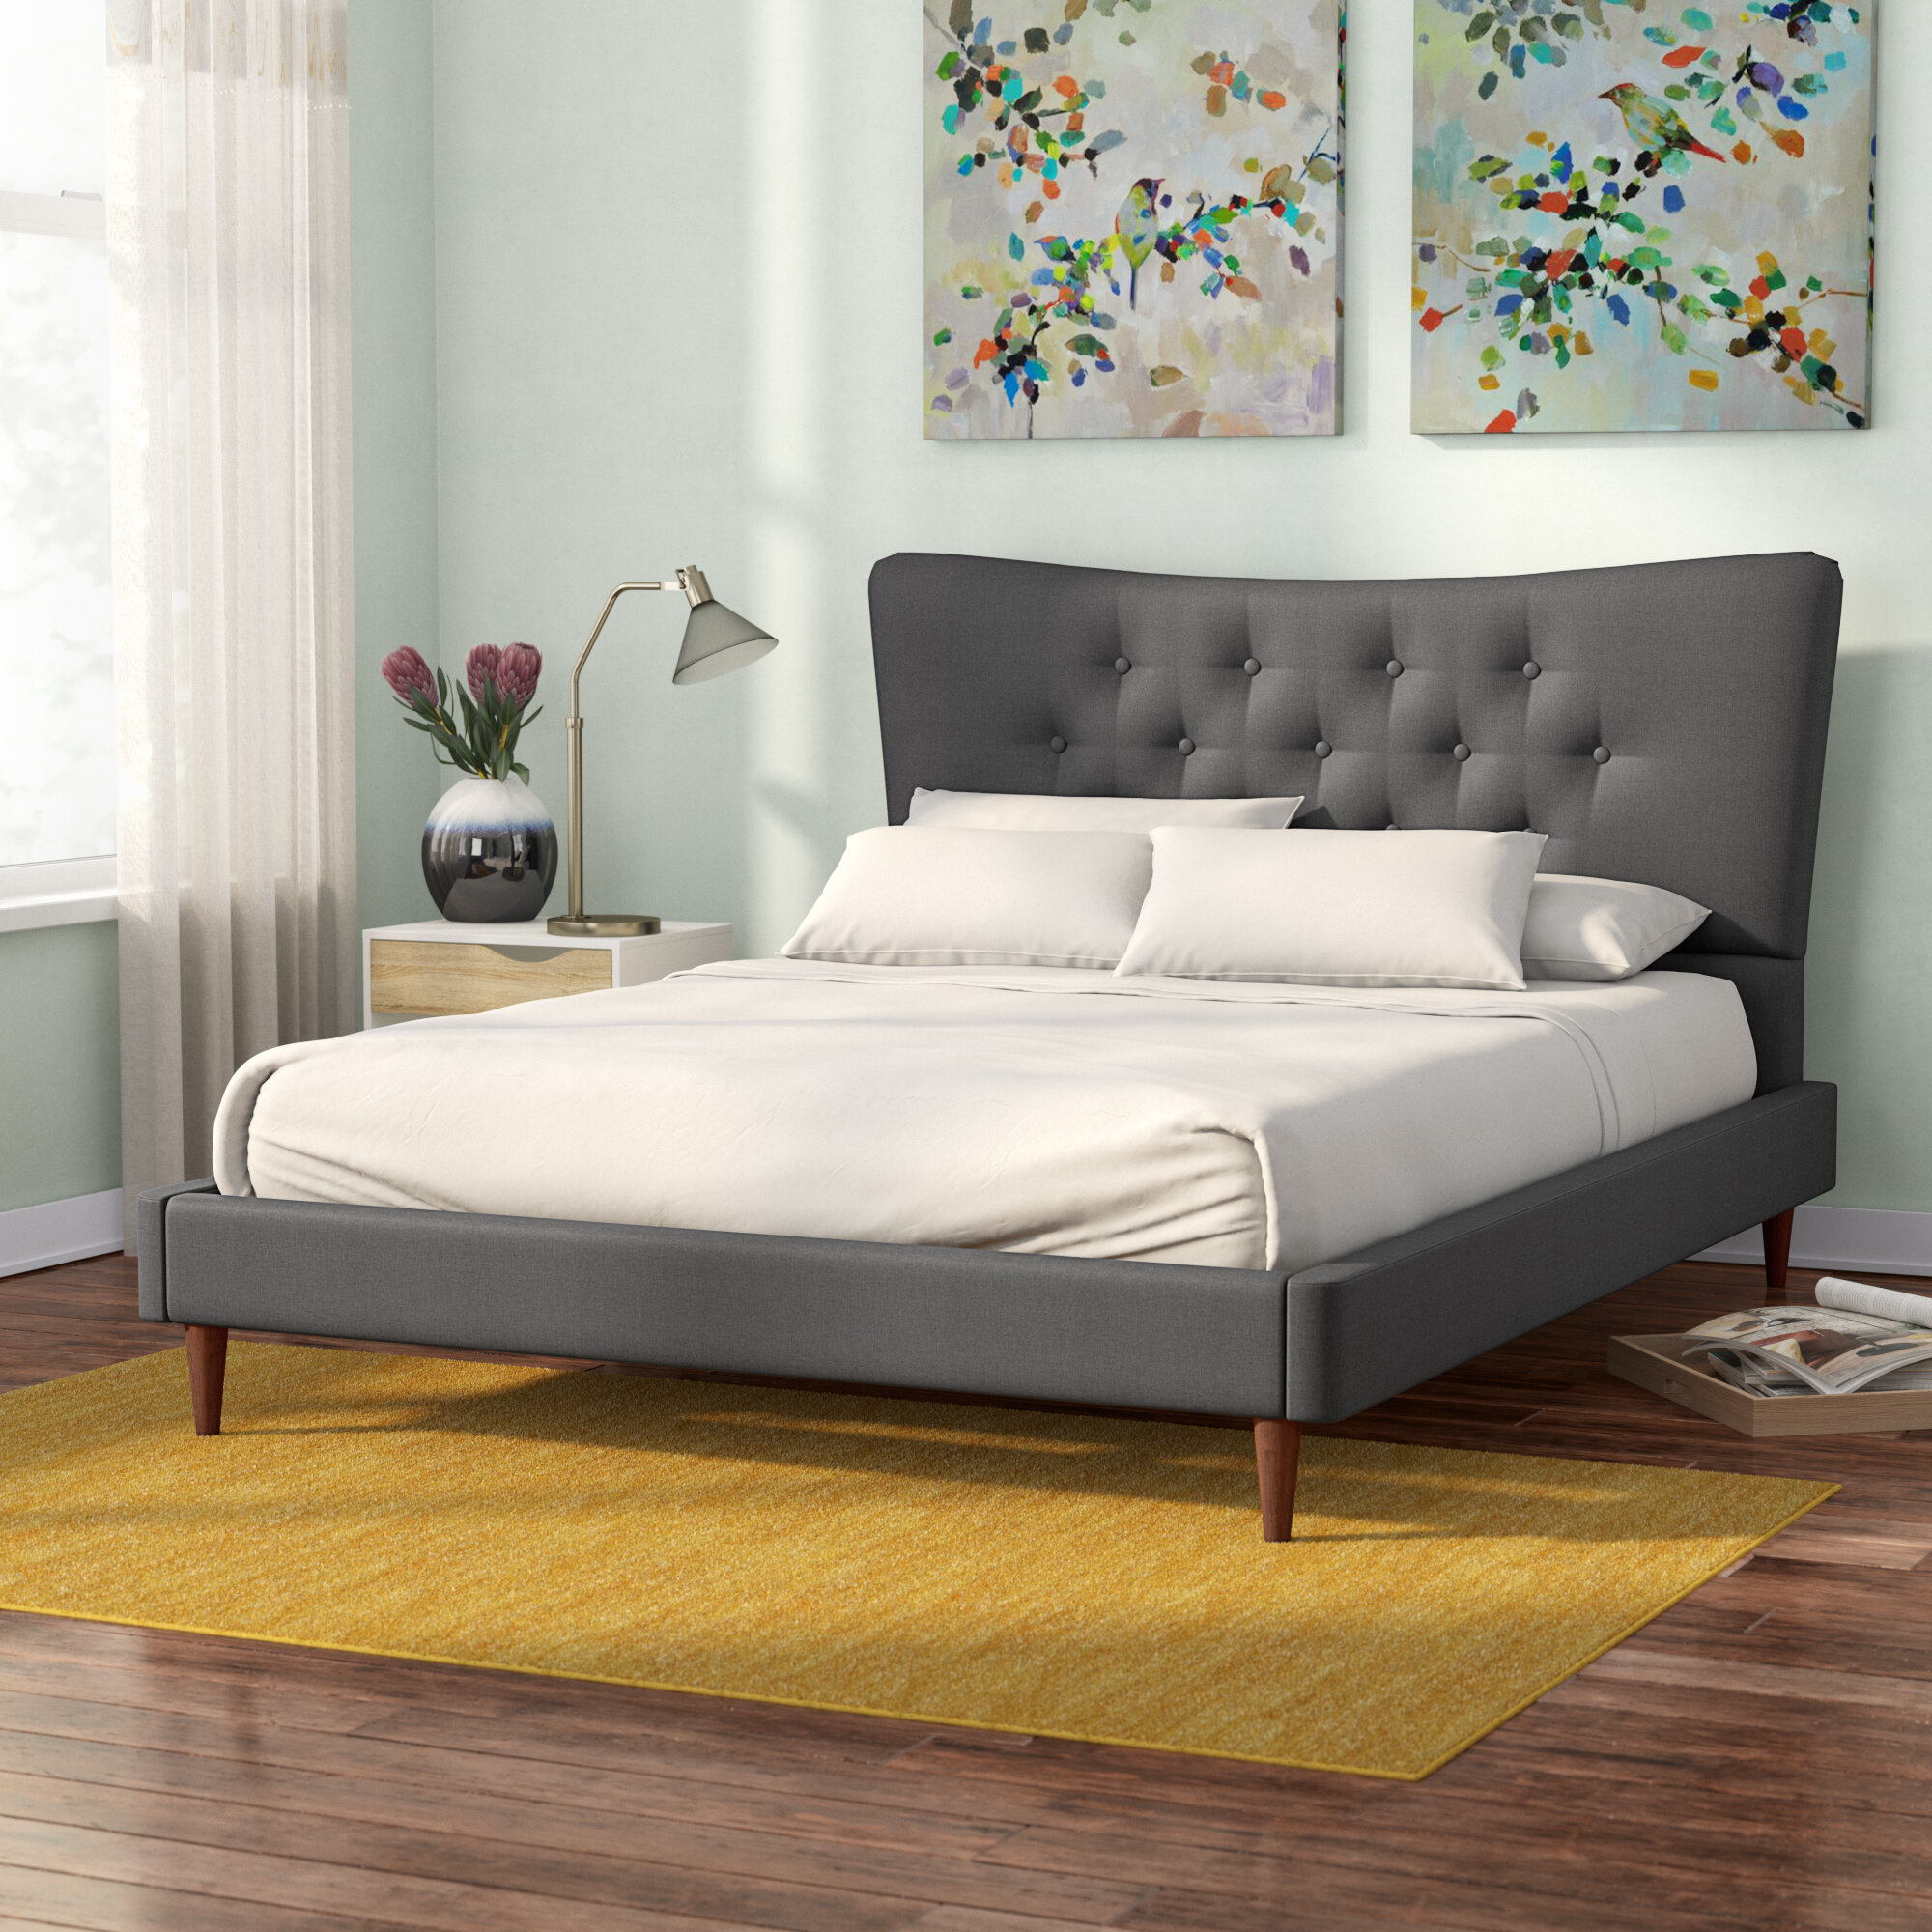 Brilliant Mizuno Upholstered Platform Bed Home Interior And Landscaping Ologienasavecom